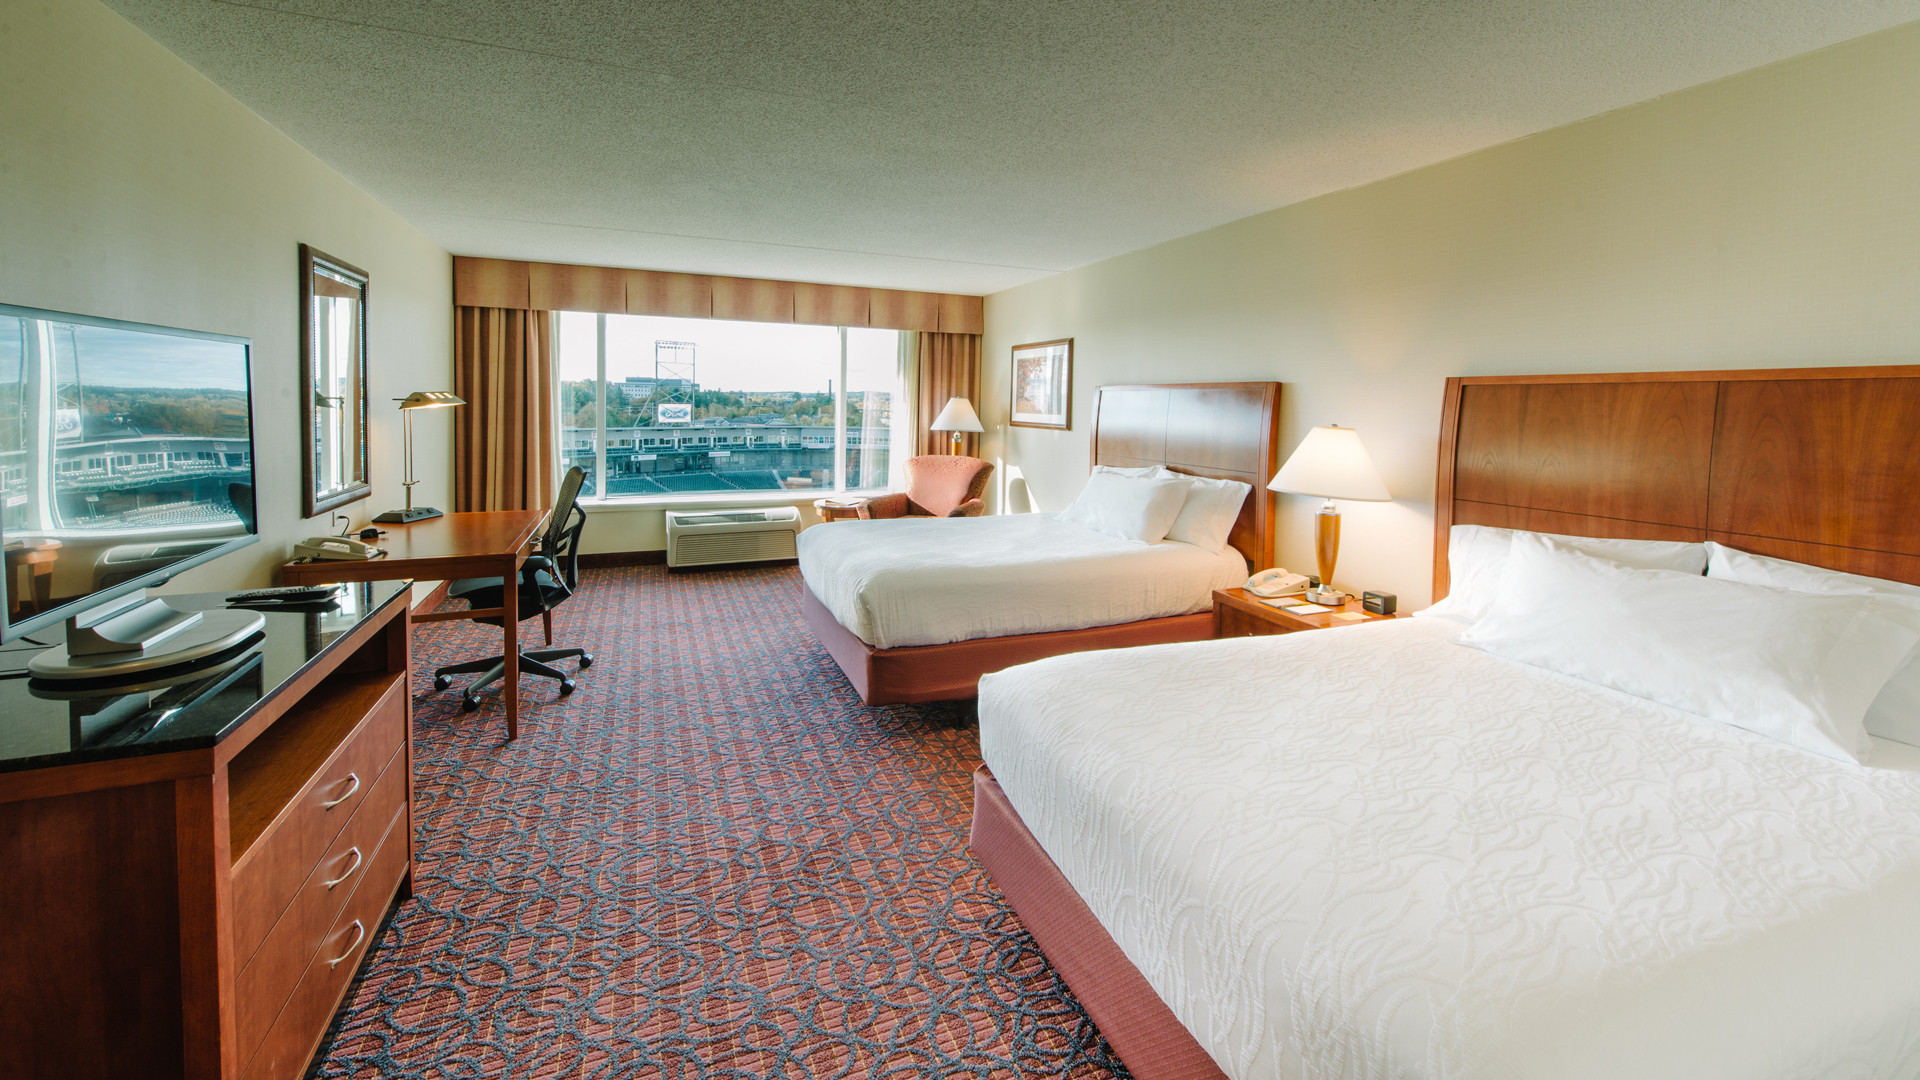 New Hampshire restaurants and activities | A hotel room at the Hilton Garden Inn Manchester Downtown